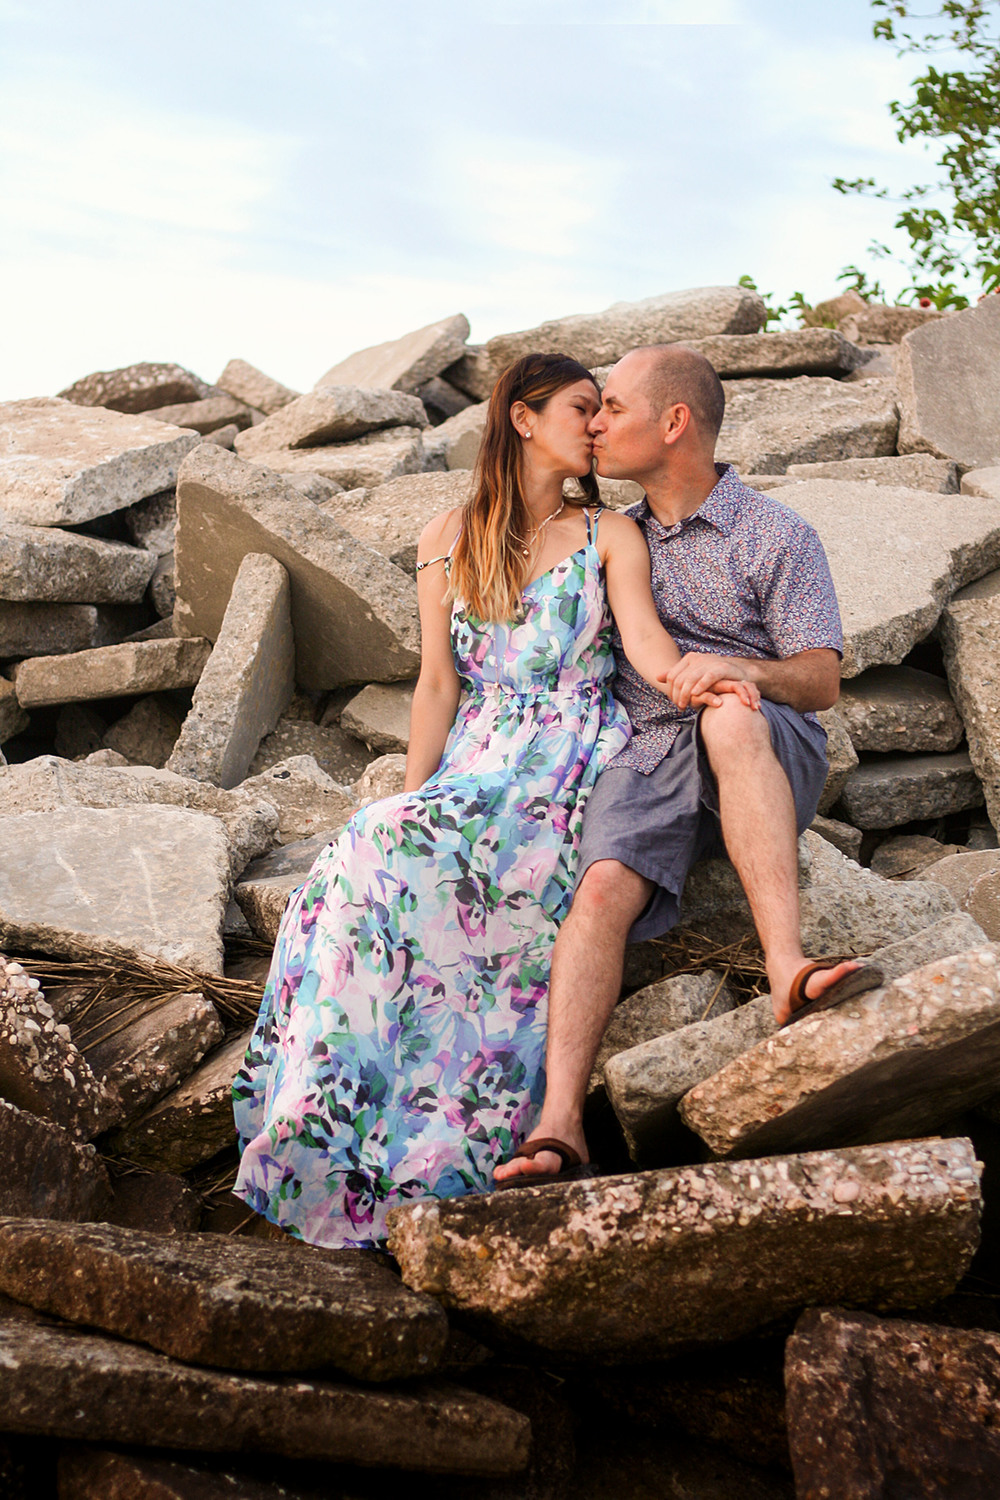 Airlie_Gardens_Engagement_Photography_Brian_&_Amy_81.jpg